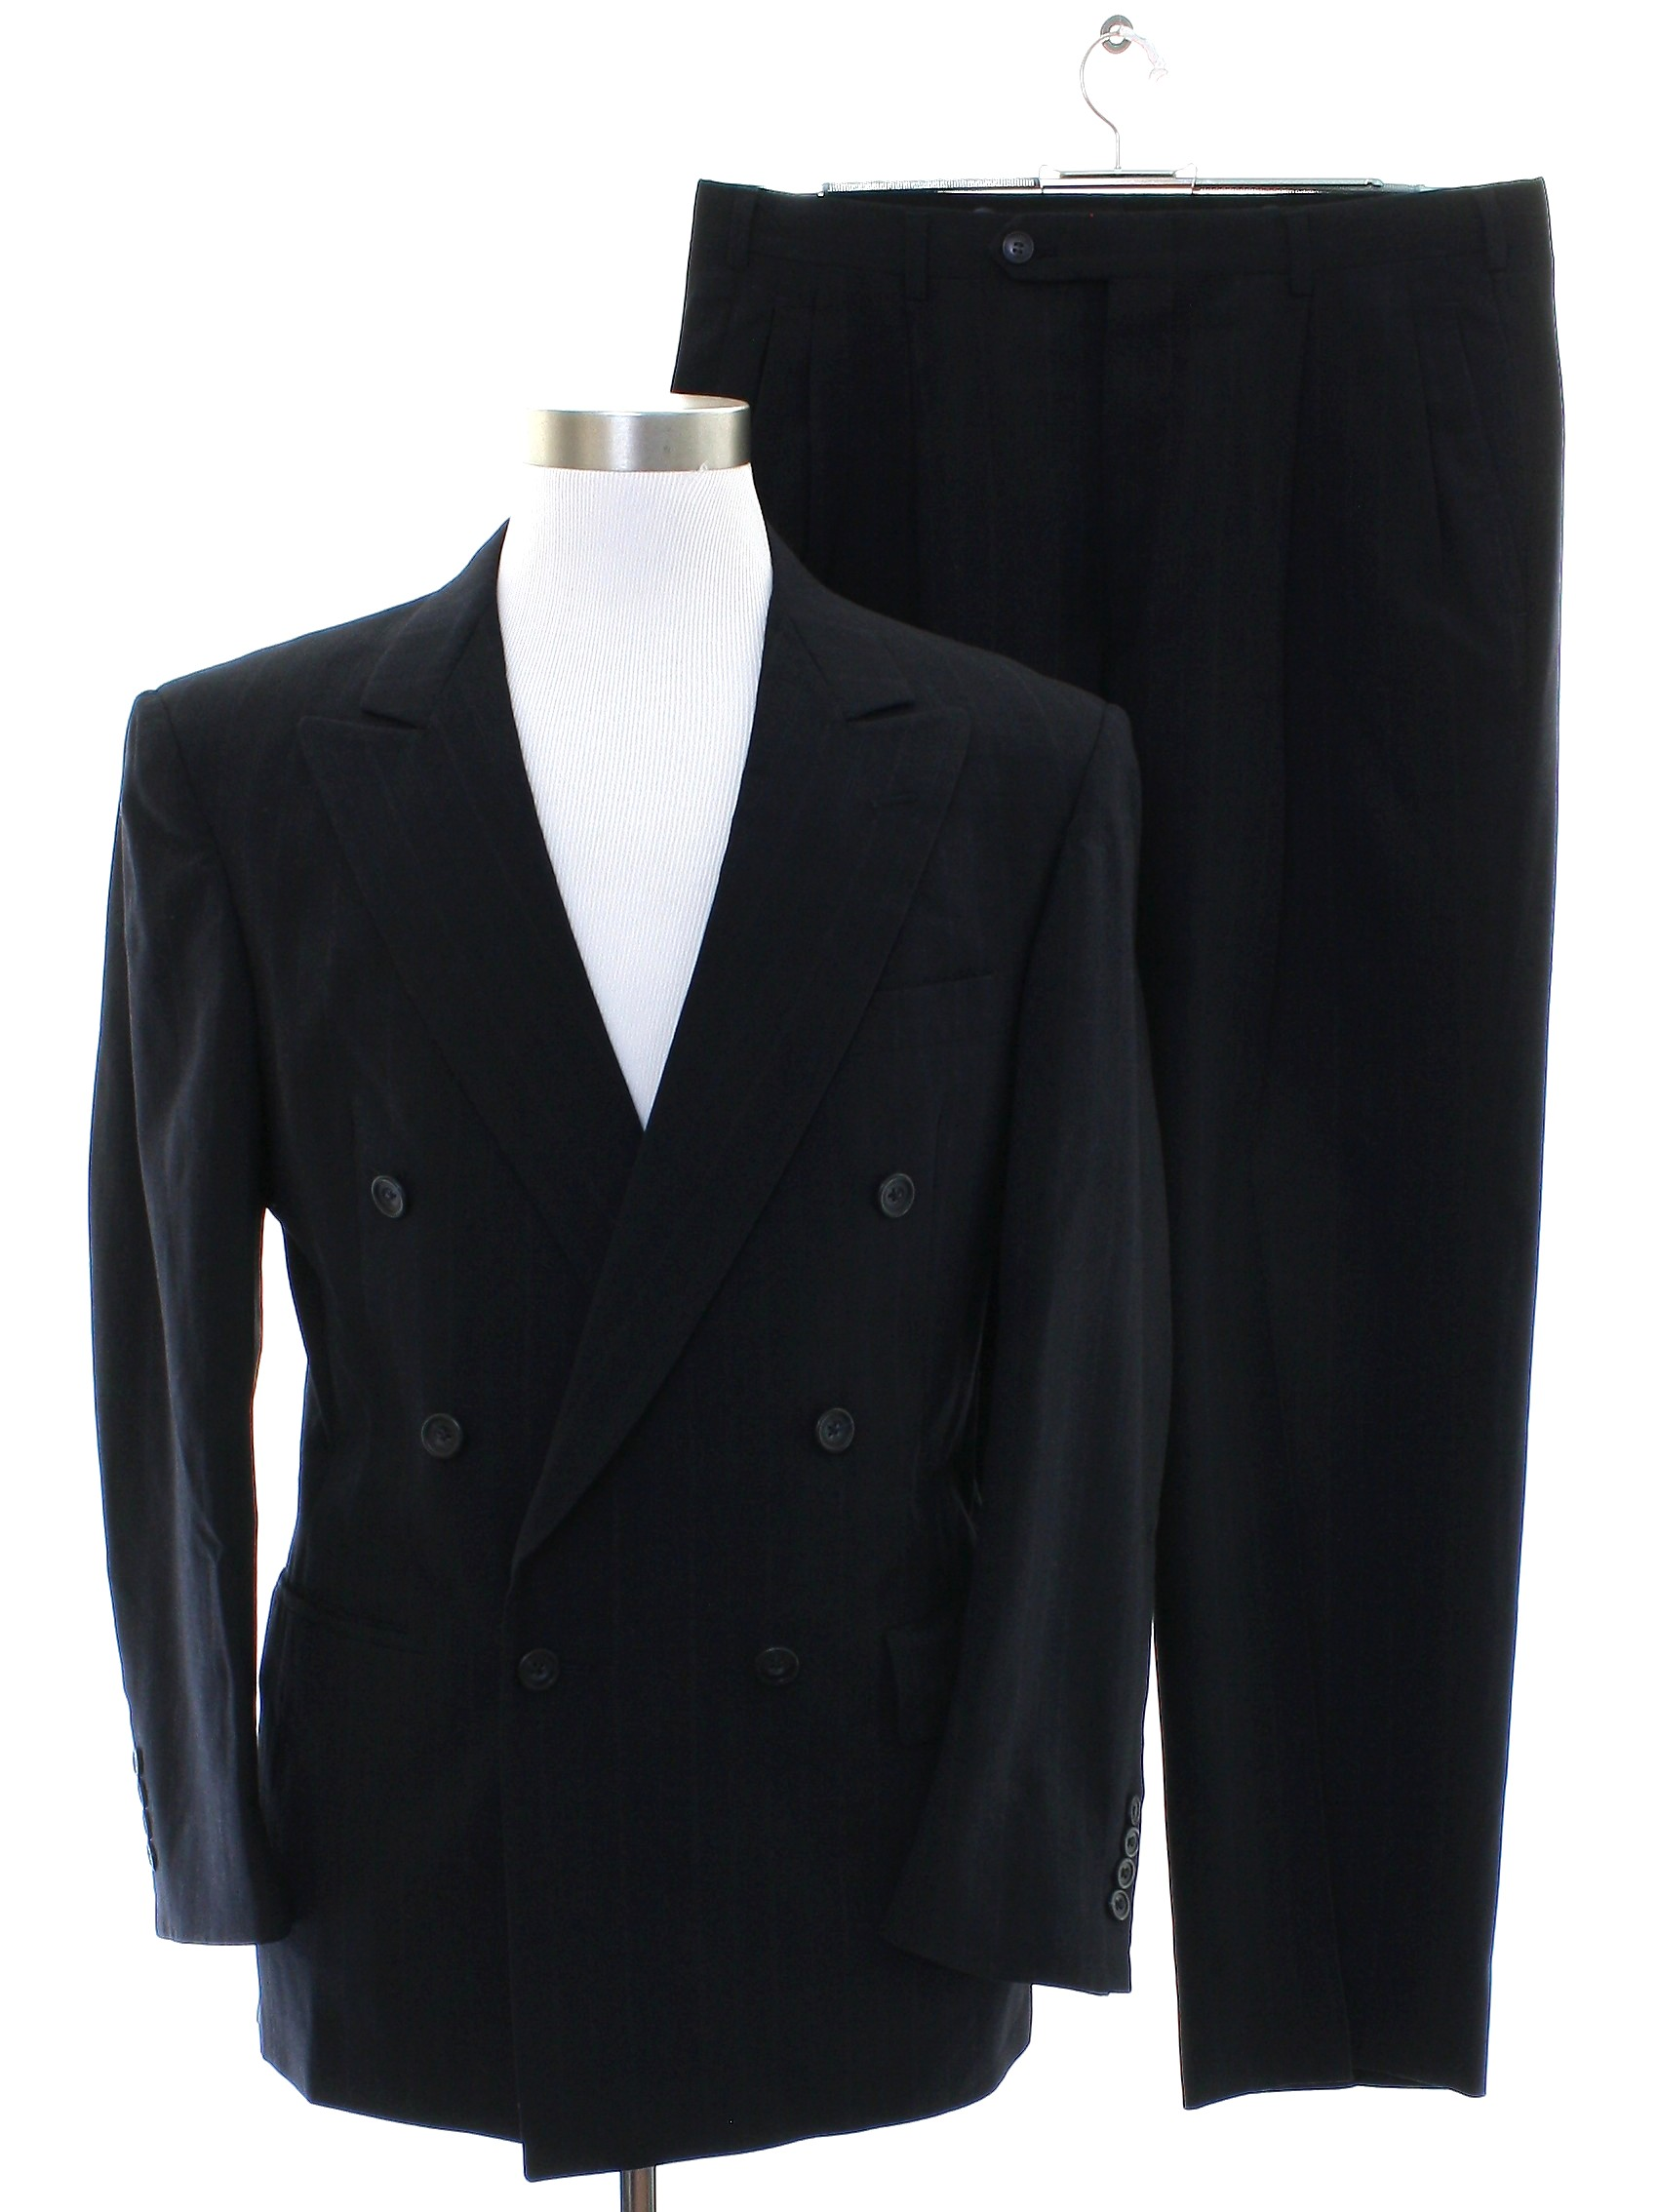 80s Vintage Austin Reed Of Regent Street Suit 80s Austin Reed Of Regent Street Mens Two Piece Totally 80s Swing Style Suit With Black Background Gray Blue Pinstriped Wool Poplin Jacket With